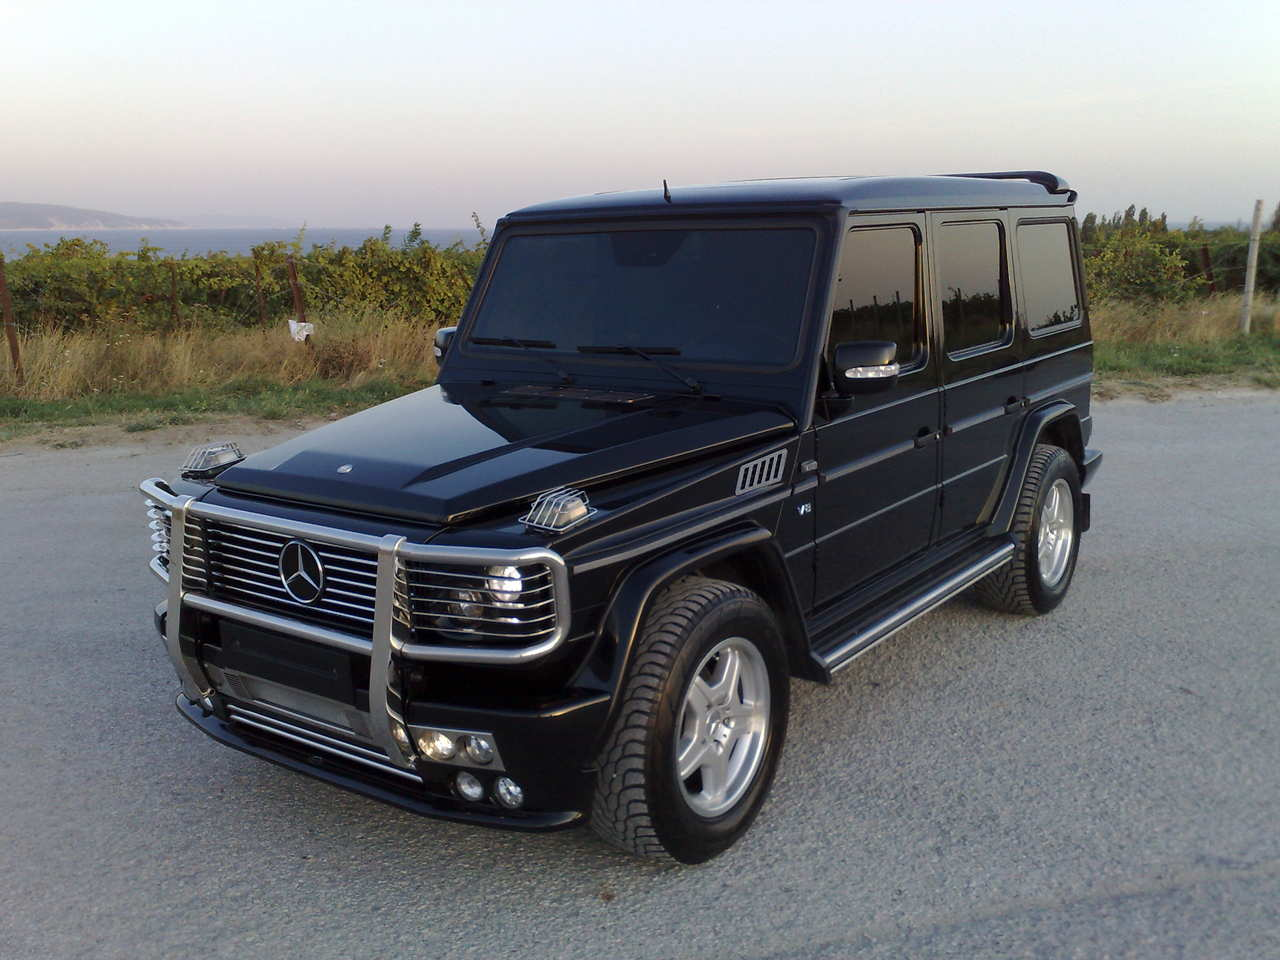 2001 mercedes benz g class pictures gasoline automatic for sale. Black Bedroom Furniture Sets. Home Design Ideas